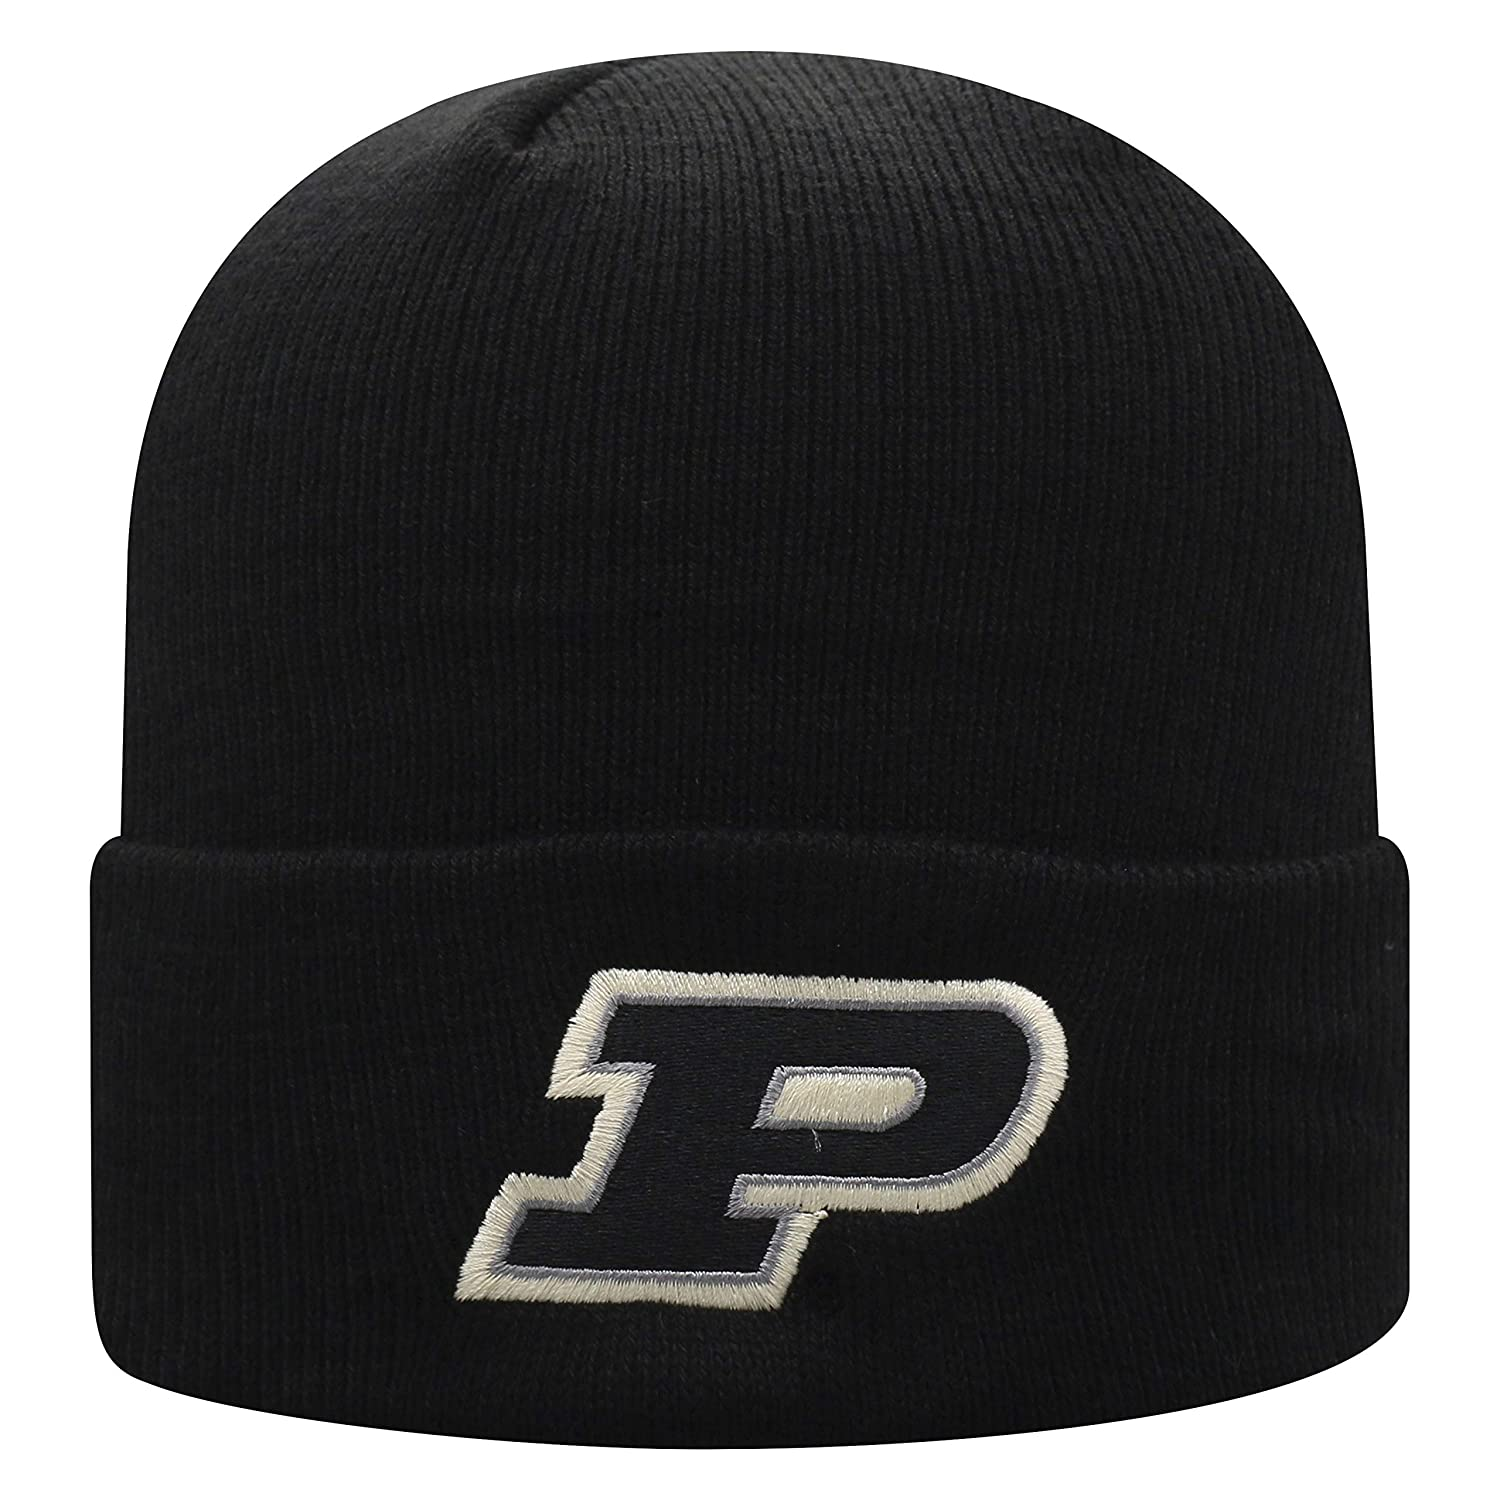 Top of the World NCAA Mens Cuffed Knit Hat Black Icon